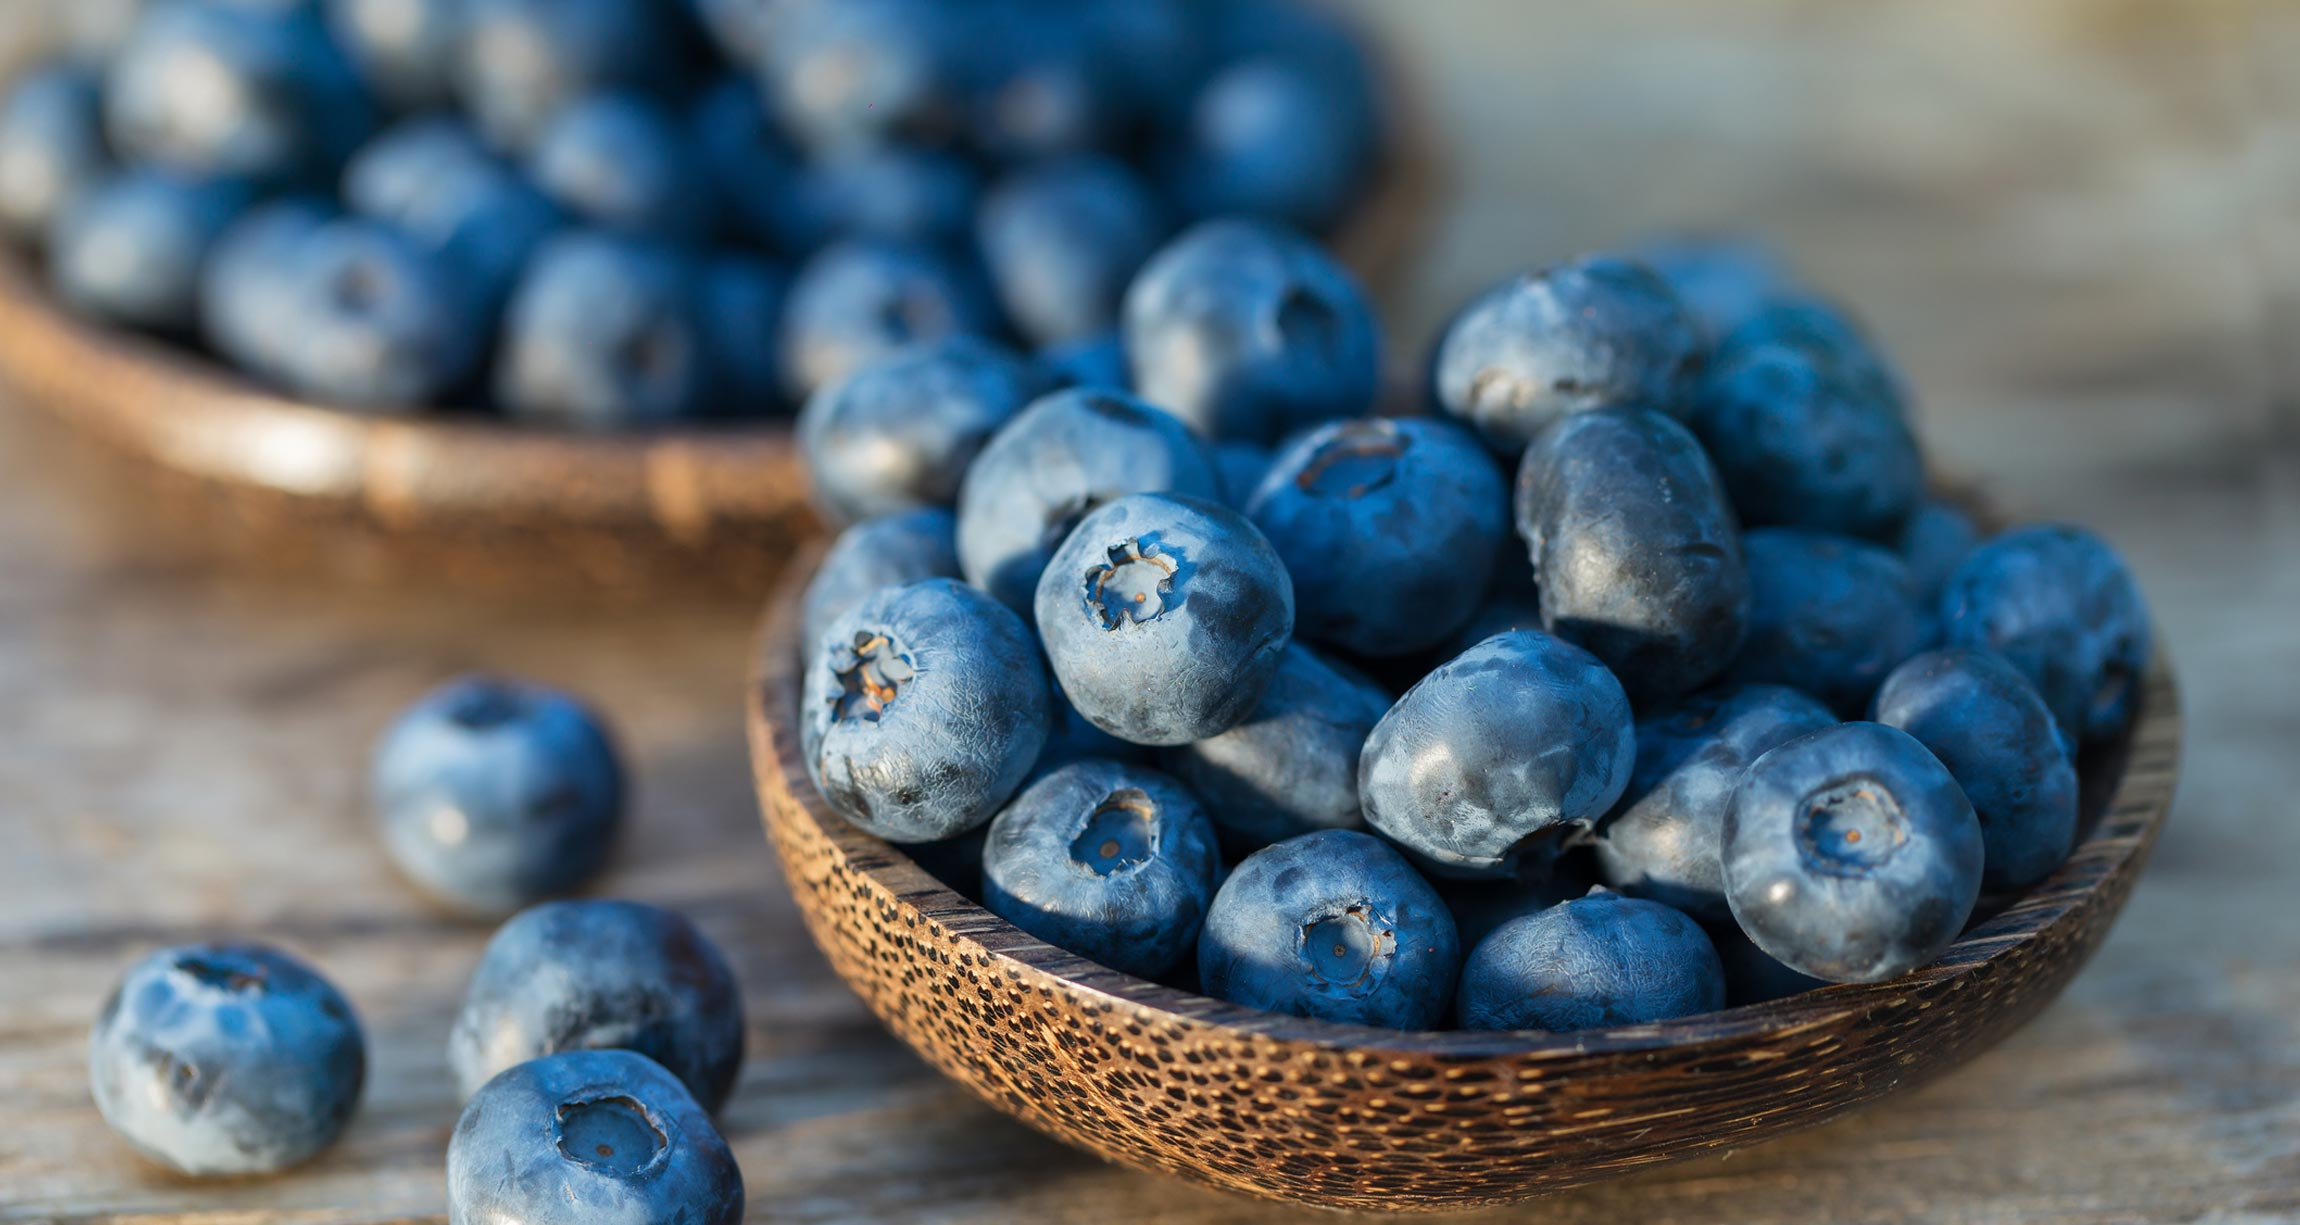 7 Stunning Reasons You Should Eat Blueberries Every Day